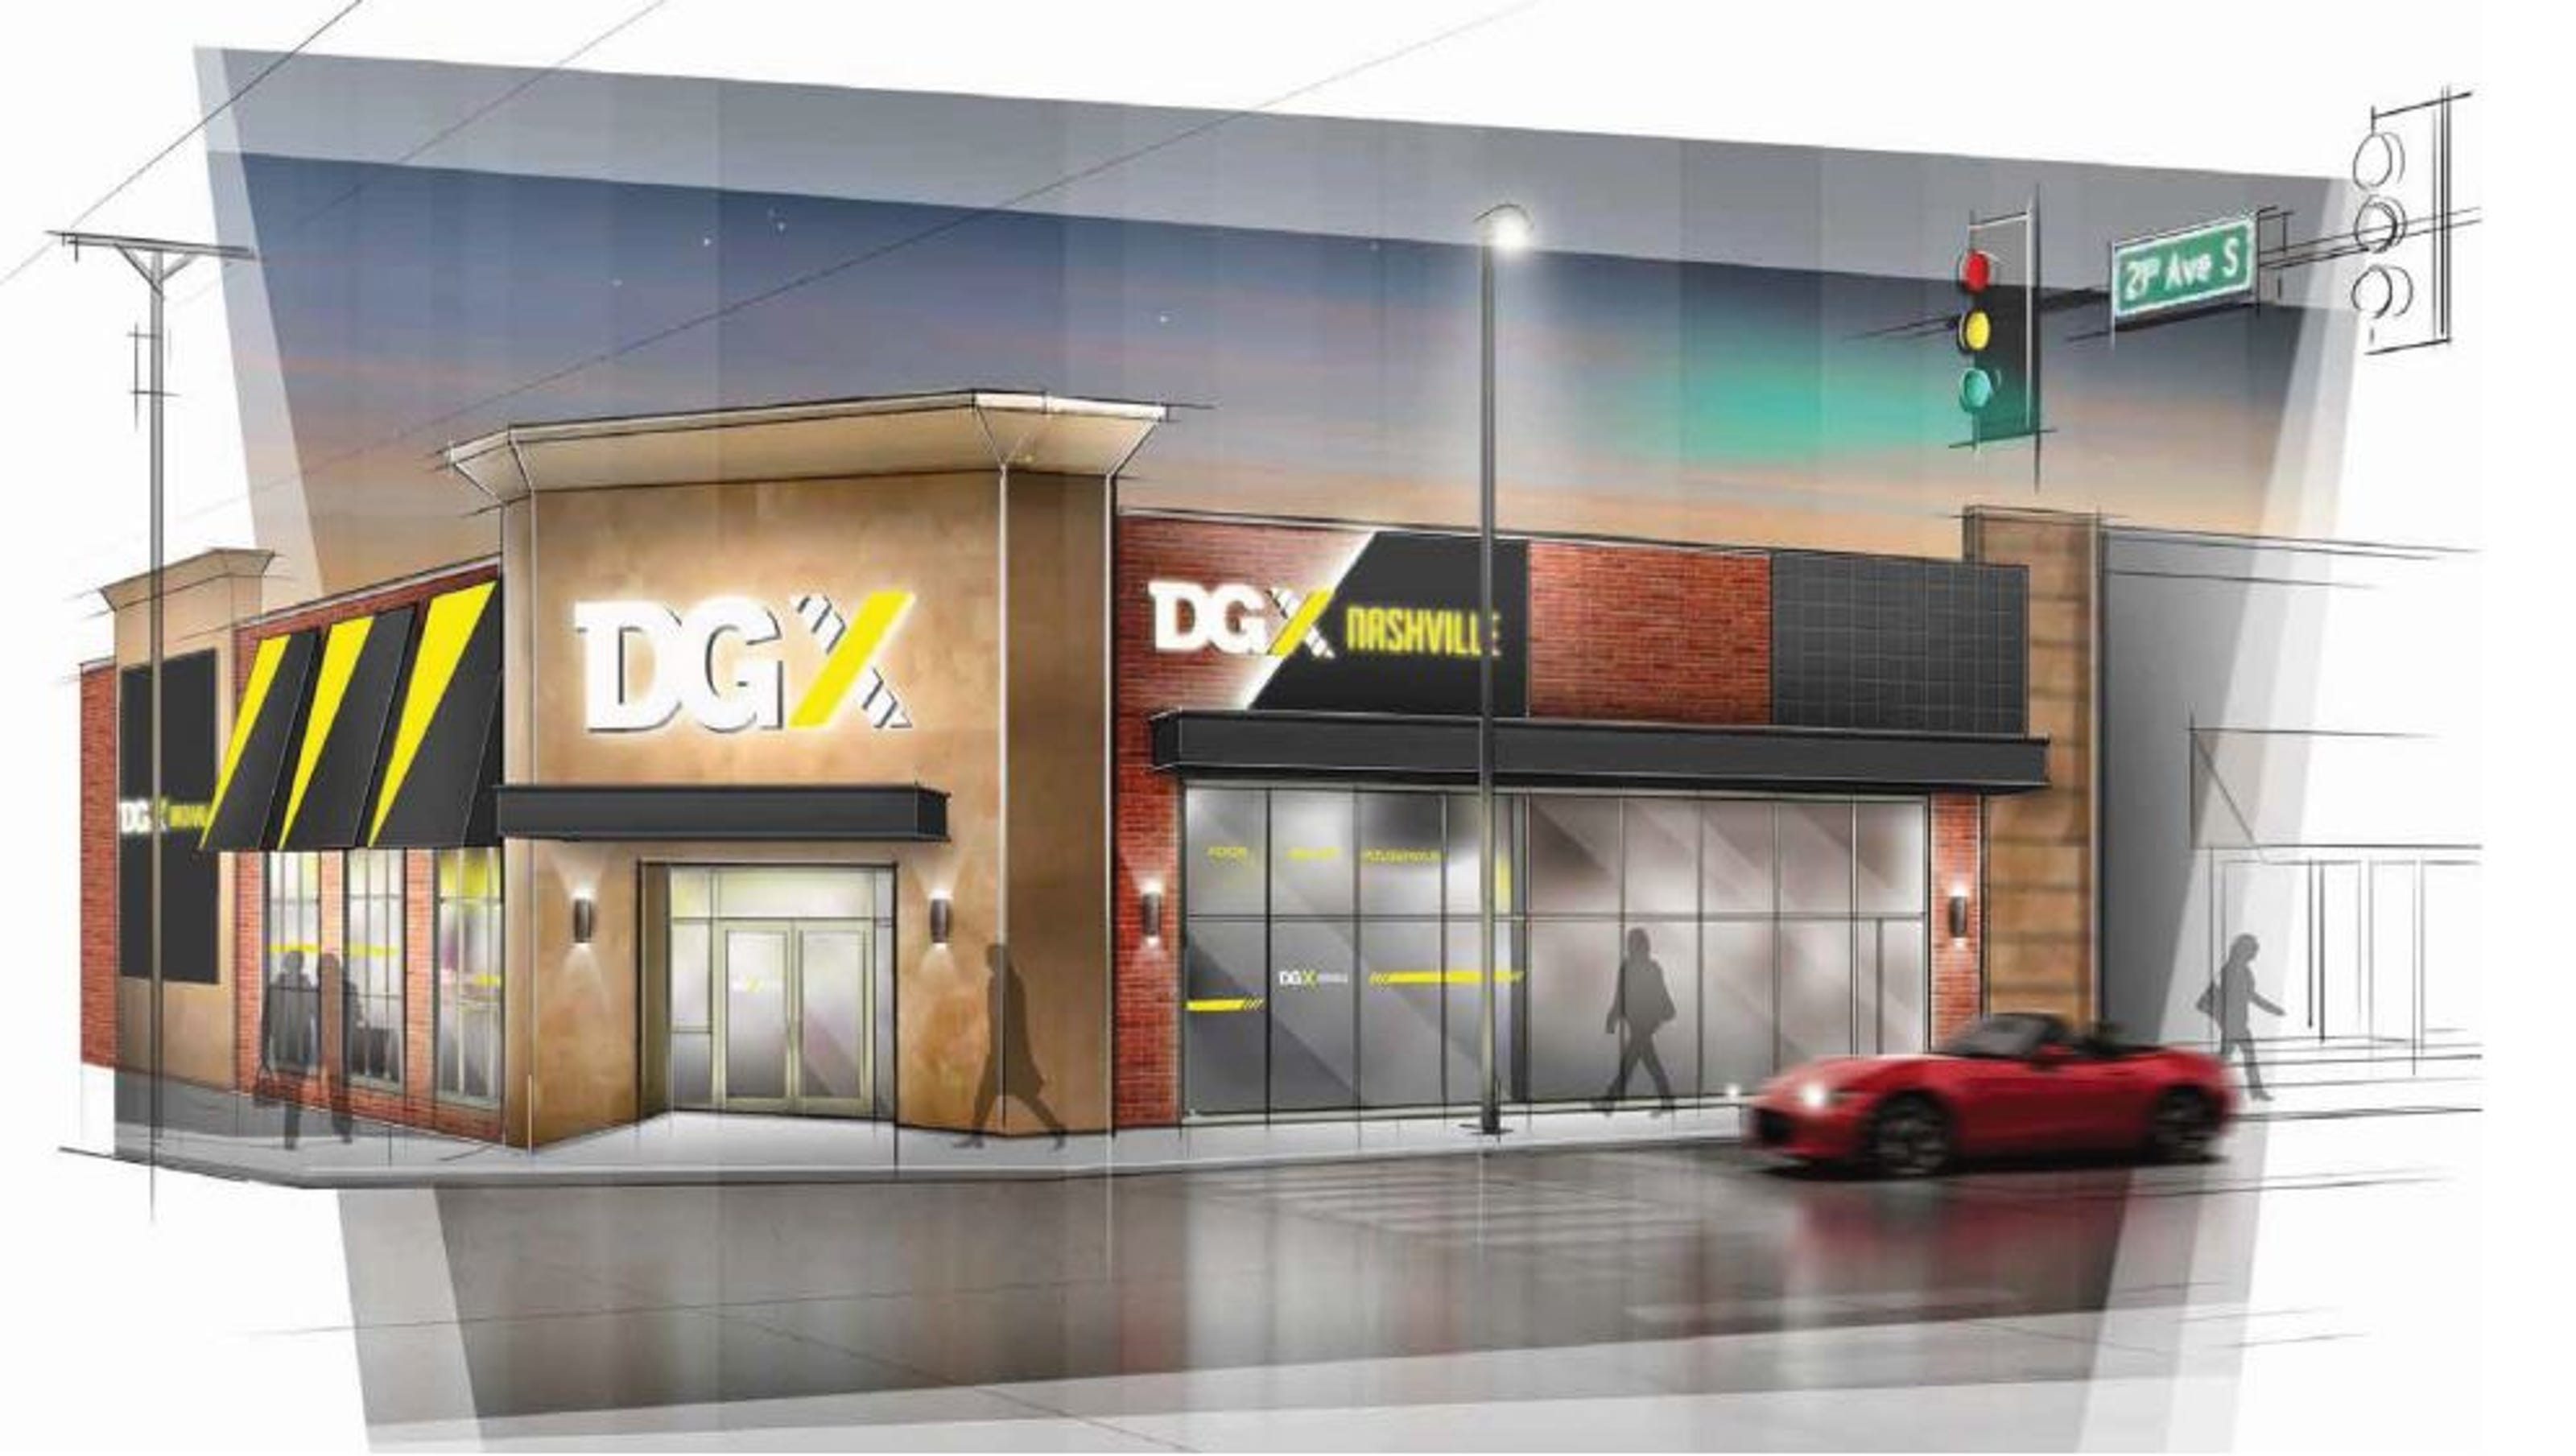 Dollar General To Open First Smaller Format Dgx Store On West End In Nashville